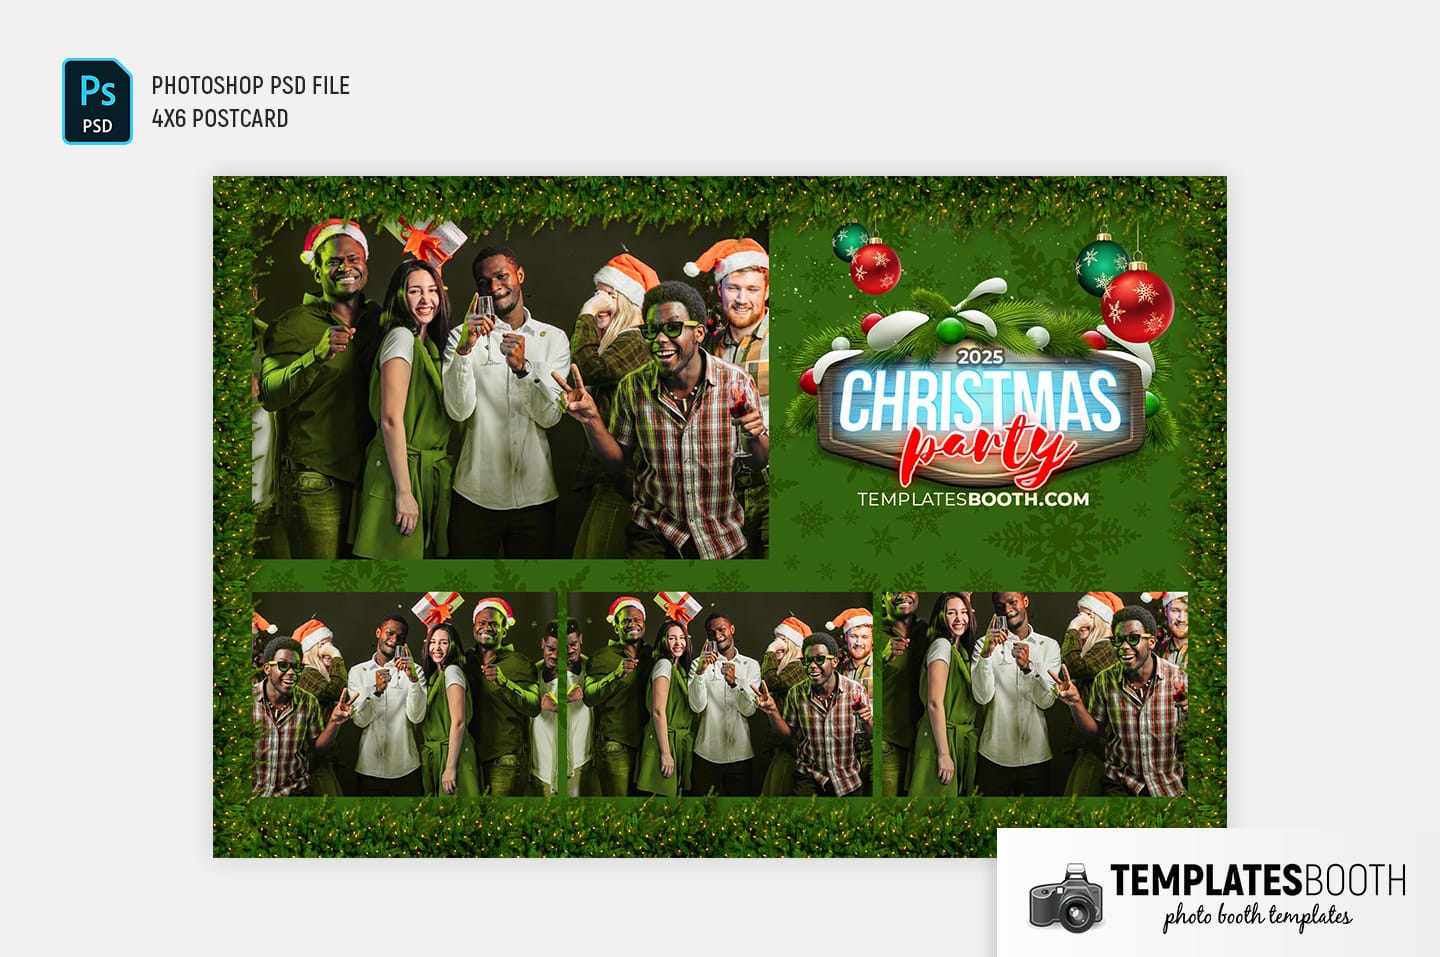 Green Christmas Photo Booth Template (4x6 postcard landscape)